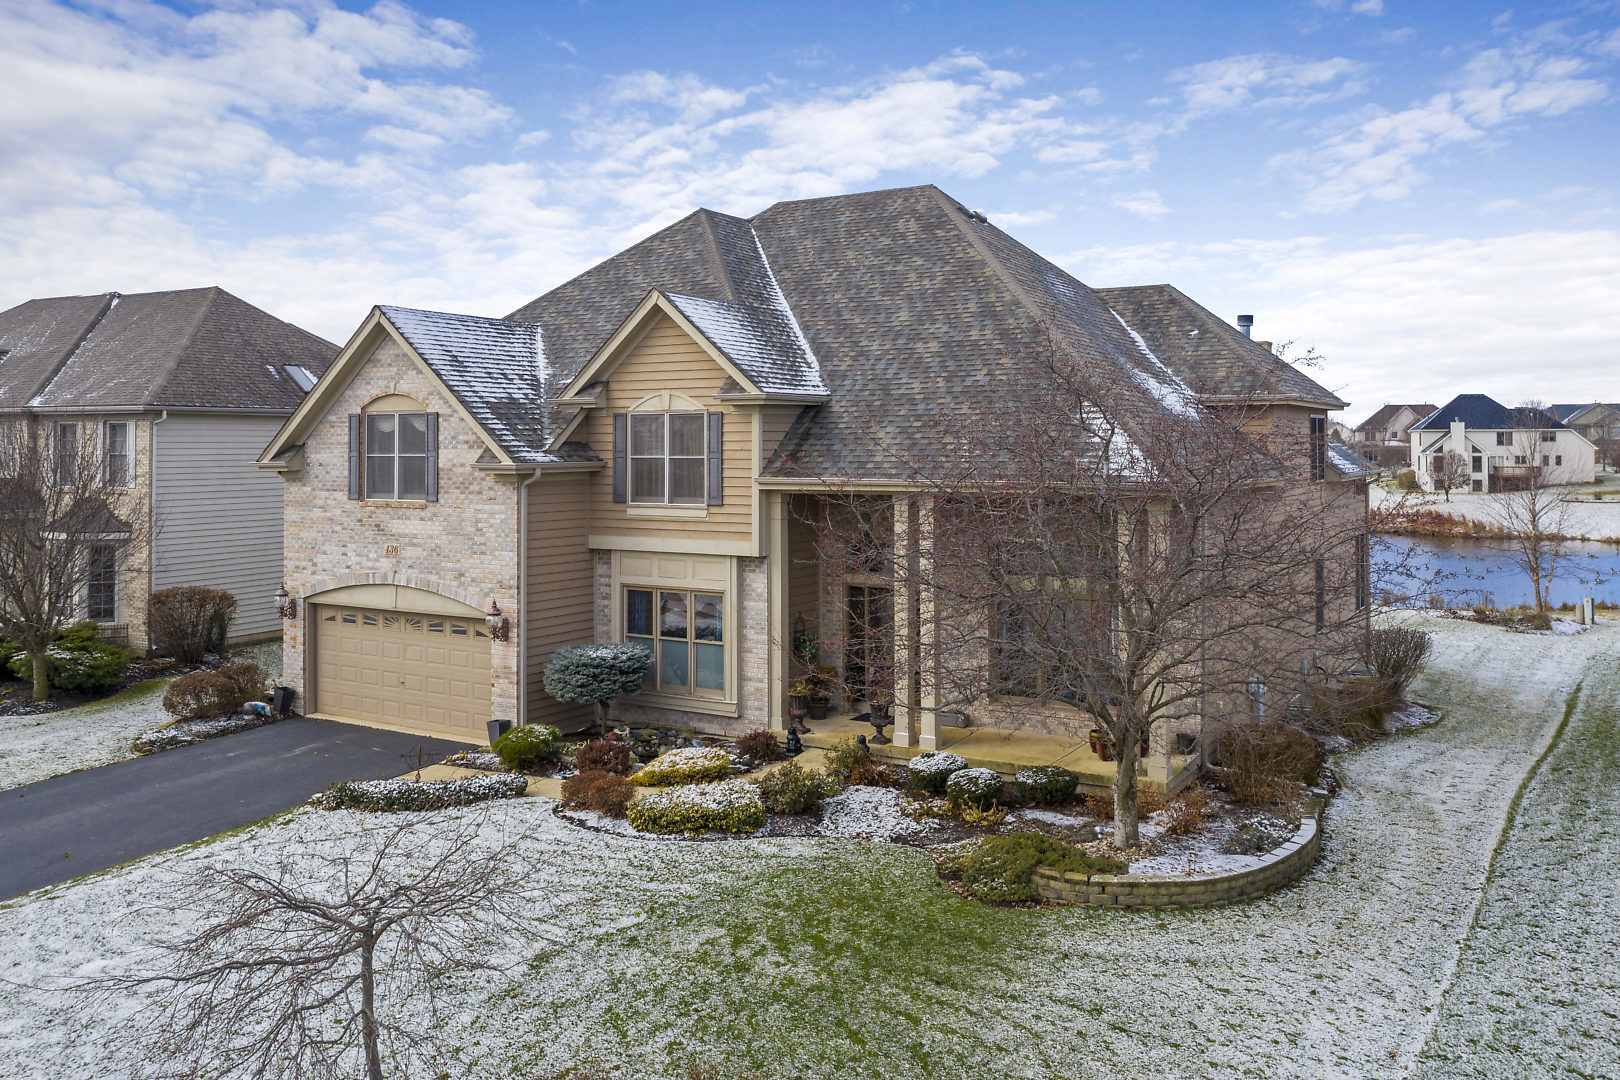 436 Sycamore Lane, Aurora North, Illinois